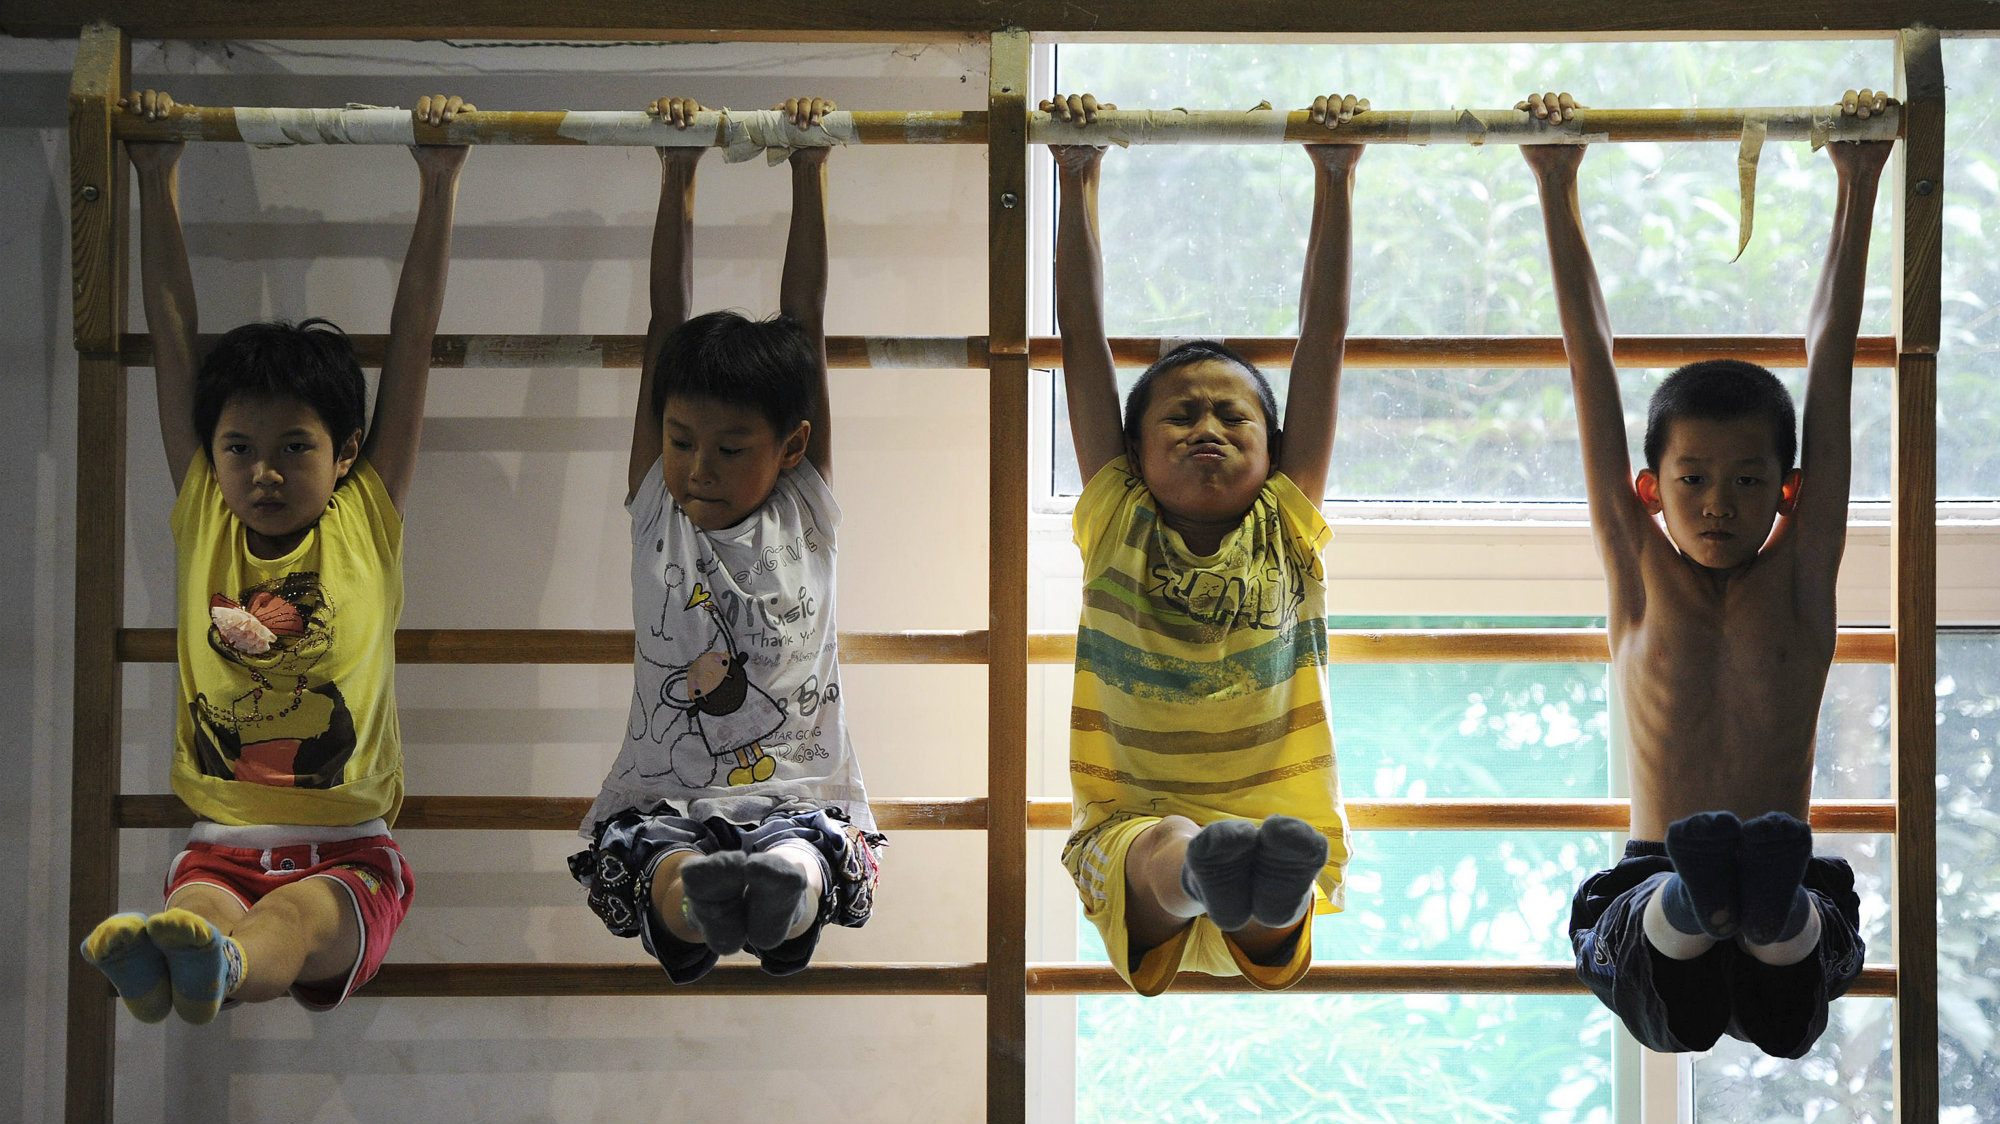 Young divers attend a training session at a gymnasium in Hefei, Anhui province.